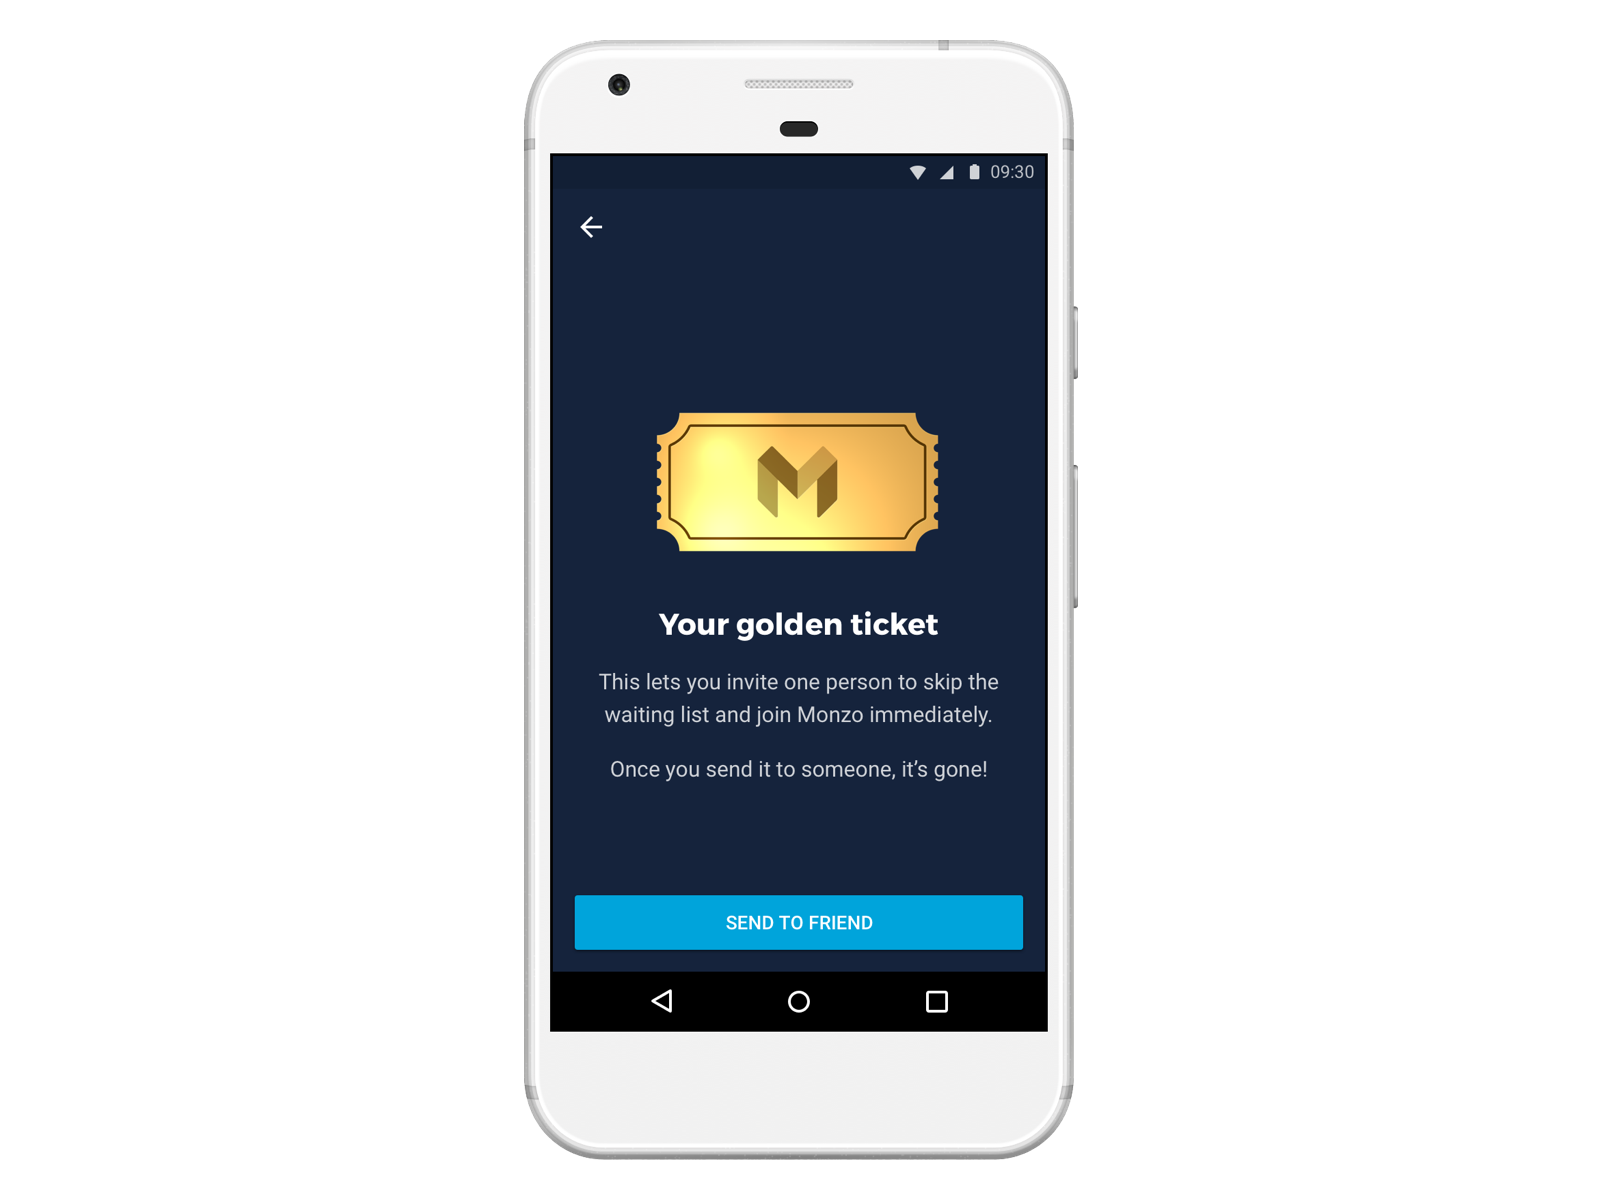 Screen showing a Golden Ticket in the Monzo app